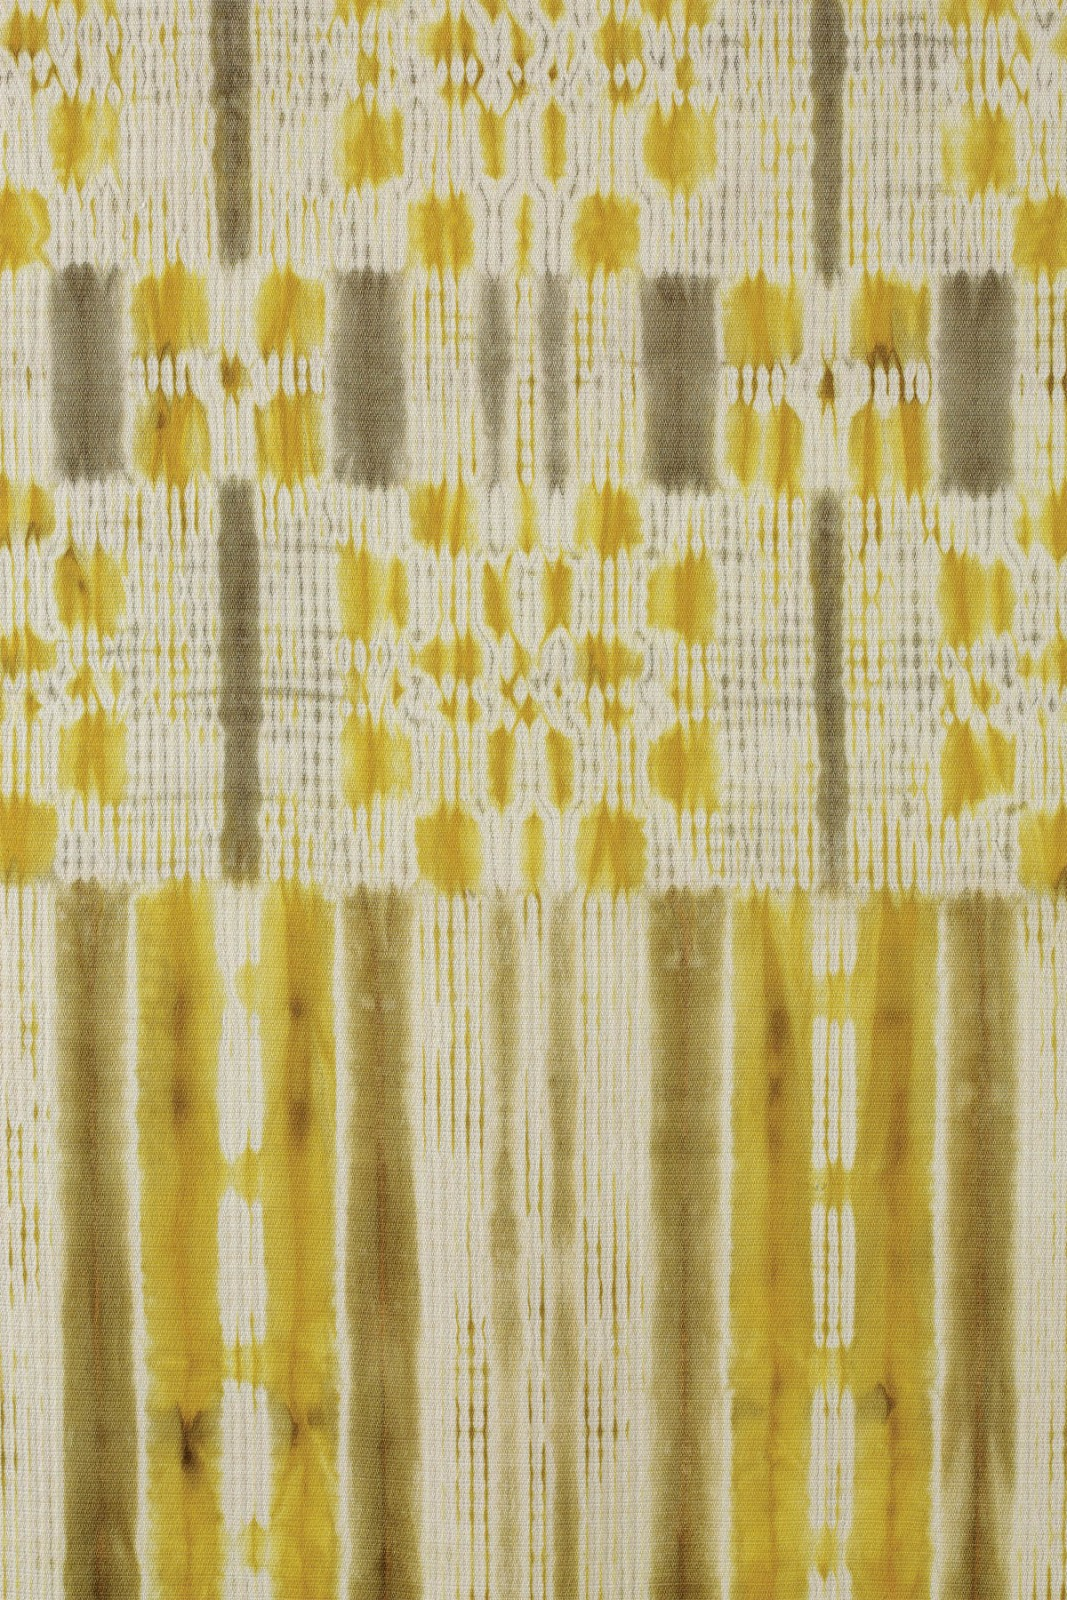 Penland Gallery Presents Further Evidence: The Art of Natural Dyes